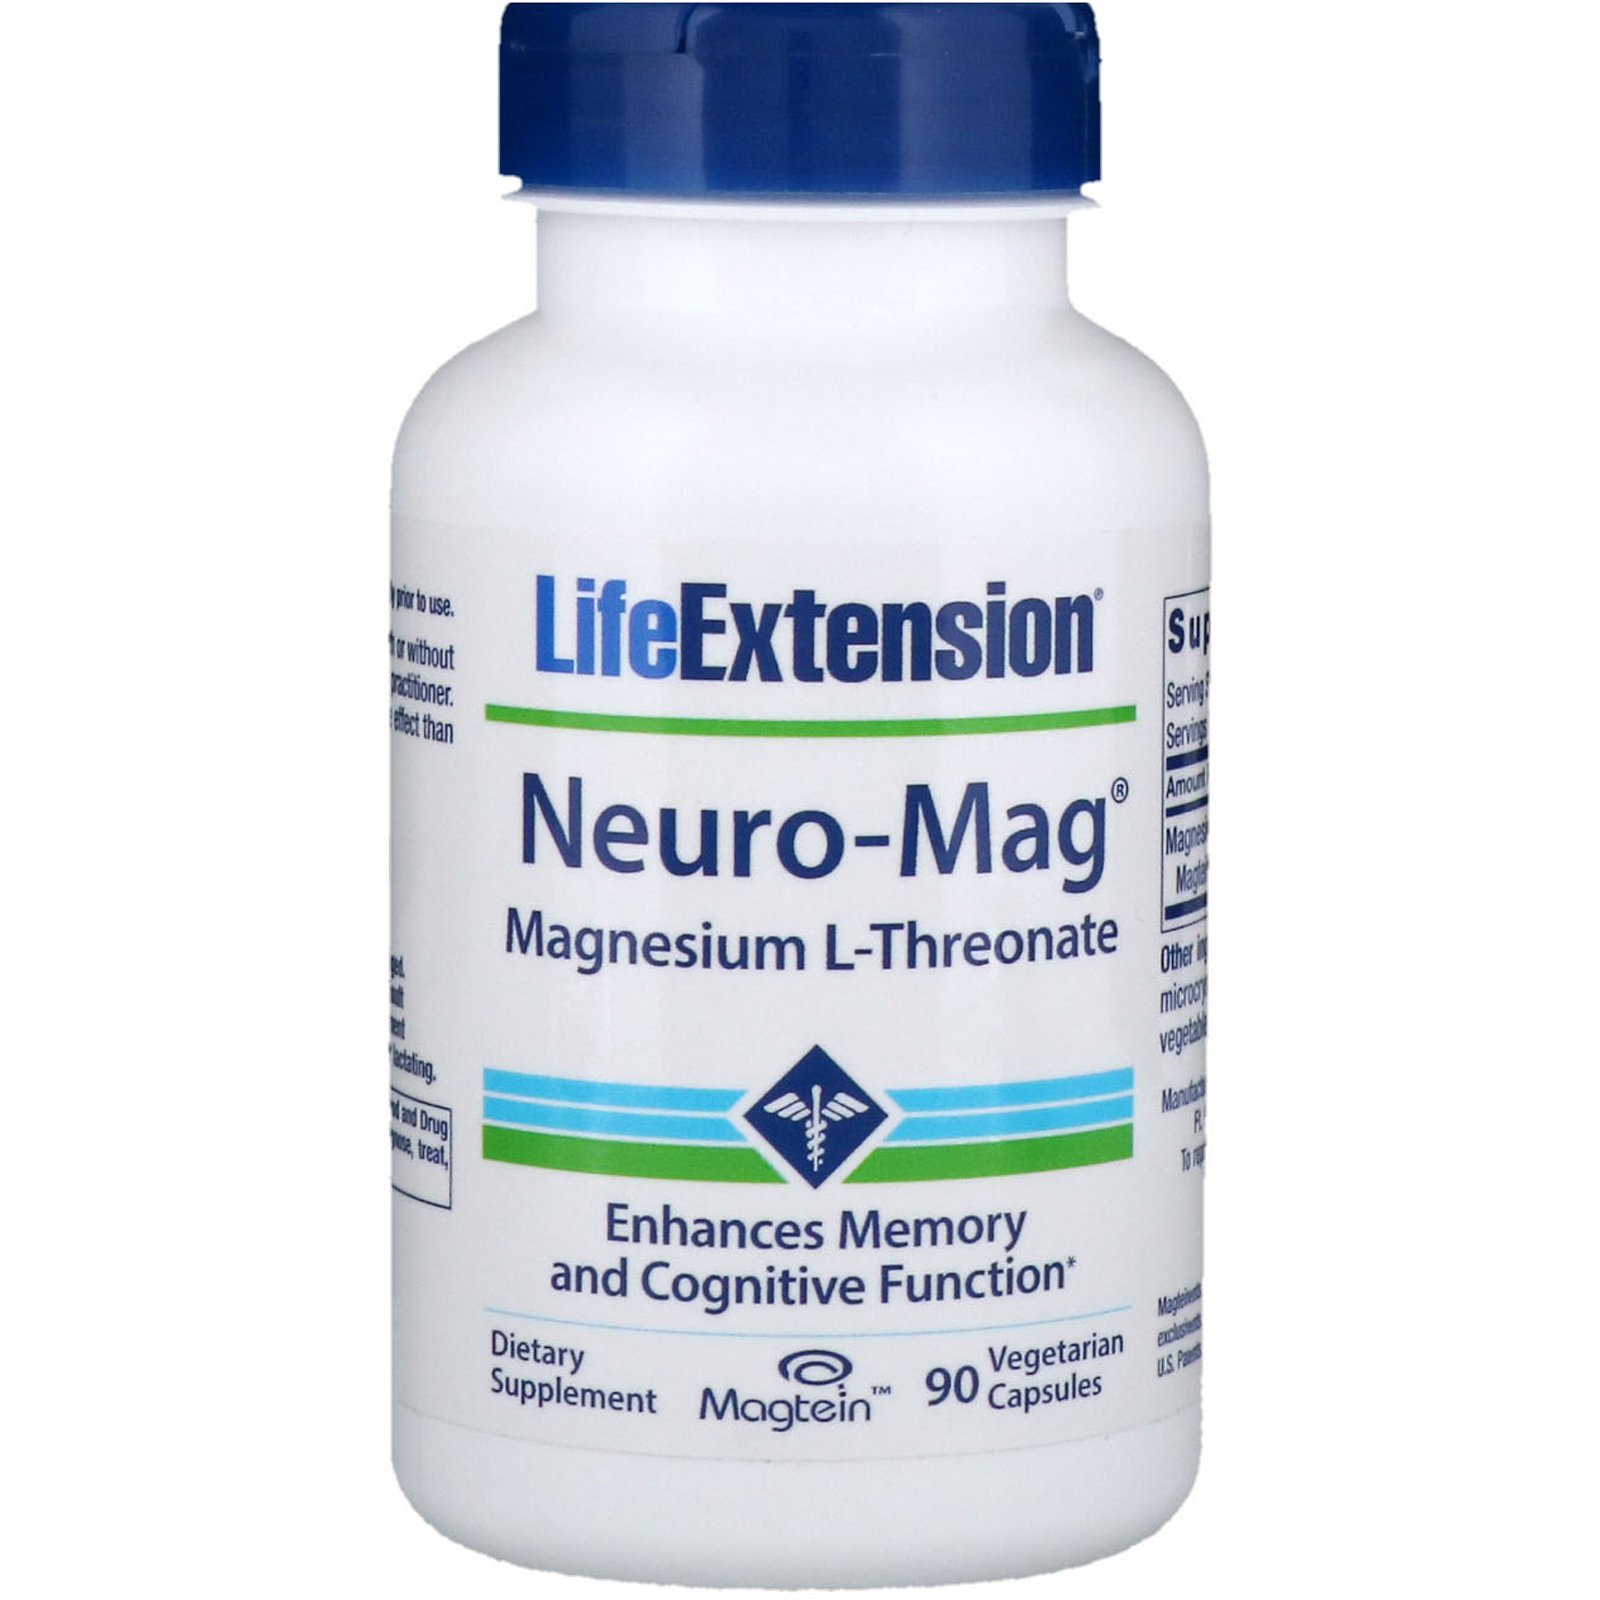 Life Extensions Neuro-Mg - Magnesium threonate may be especially beneficial for age-related cognitive decline. The suggested dose is 2,000 mg.